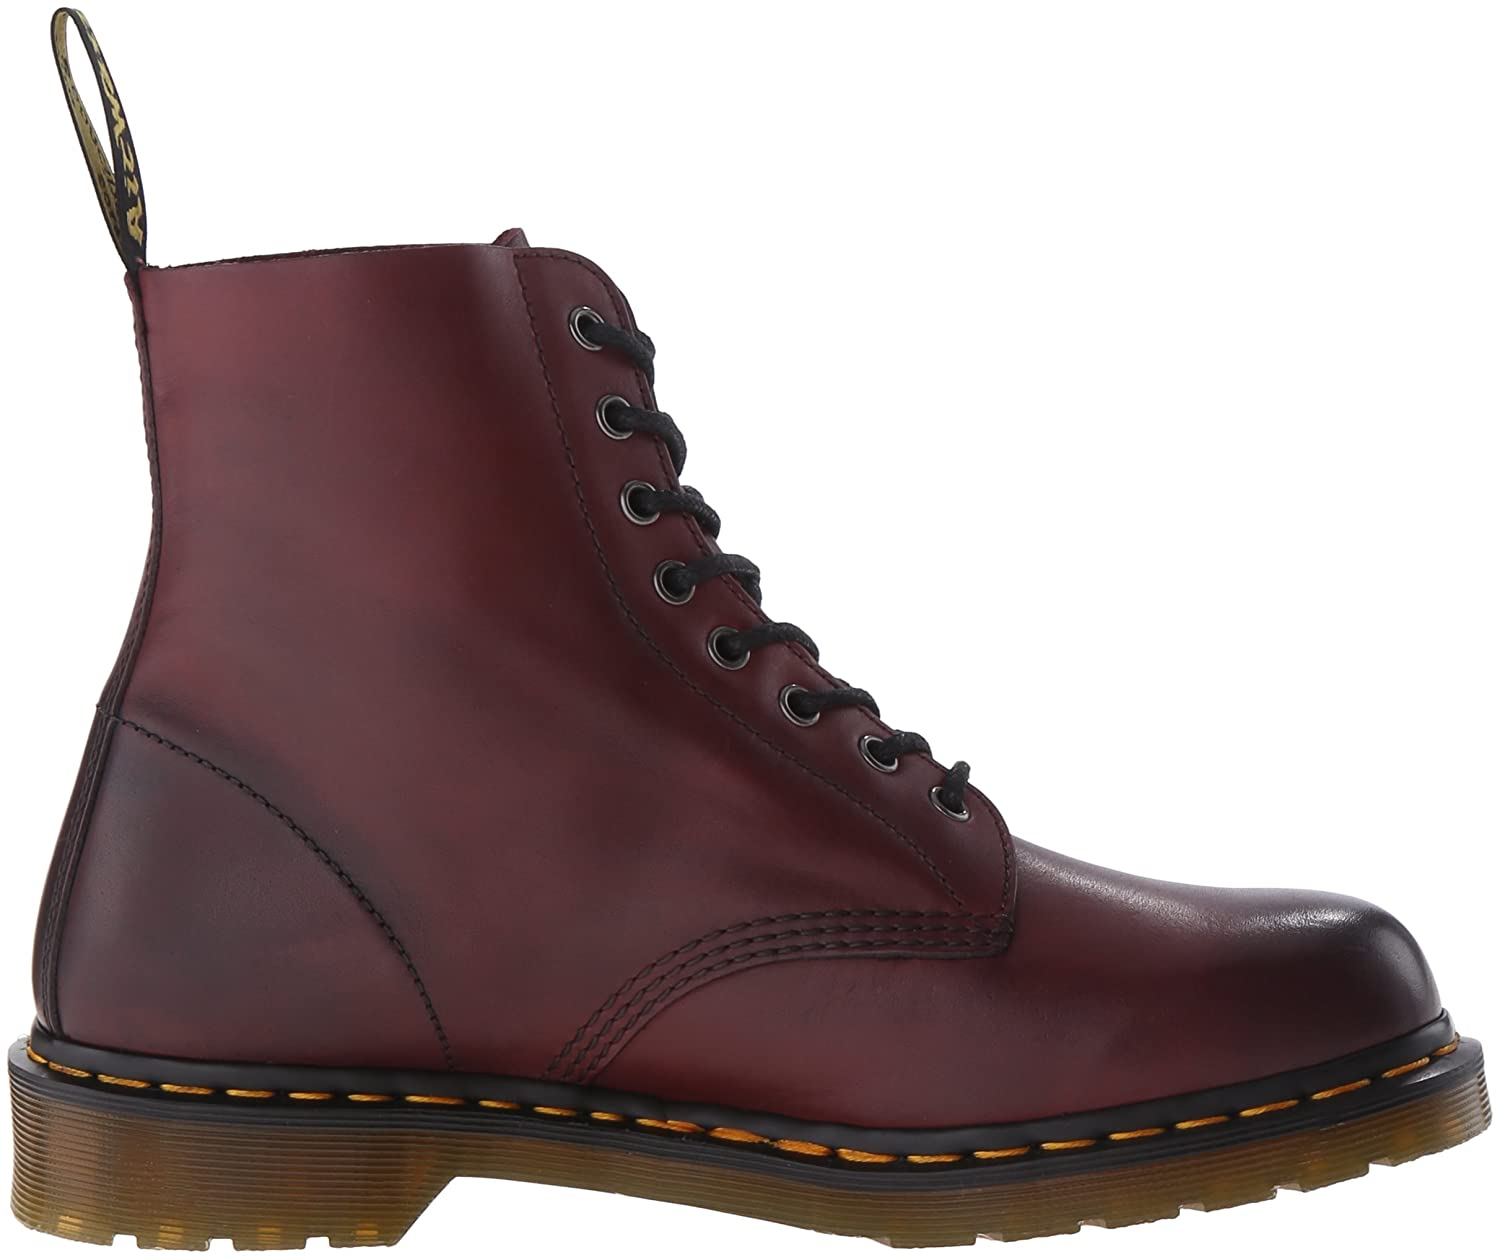 Dr. Combat Martens Women's Pascal Leather Combat Dr. Boot B00IJNKS7A 7 M US|Cherry Red Virginia Leather 71ee88